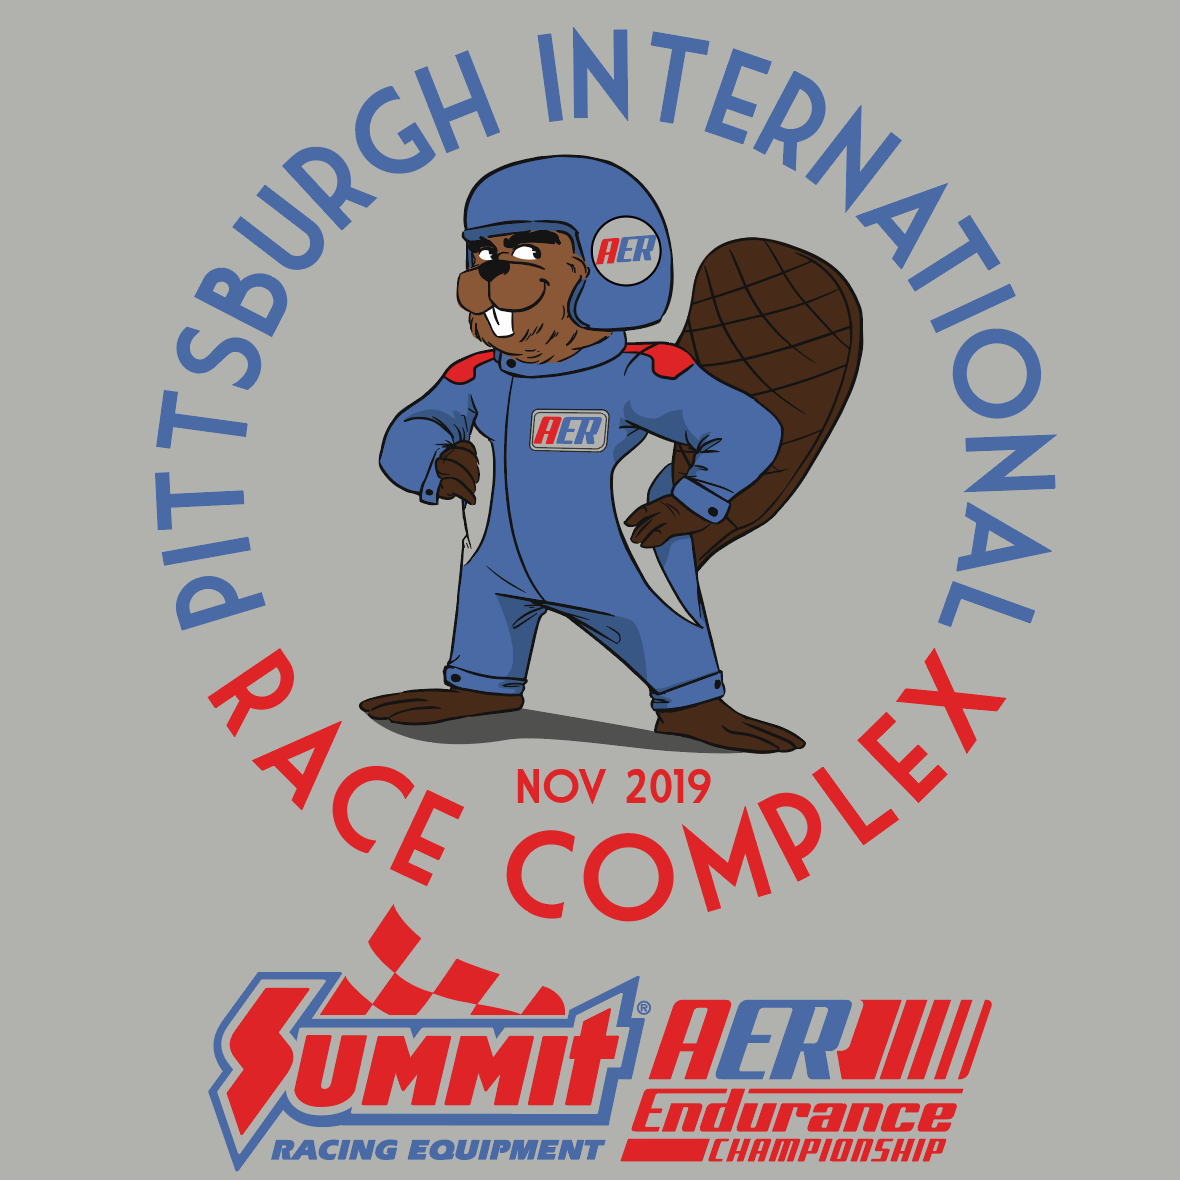 PittRace Event Shirts